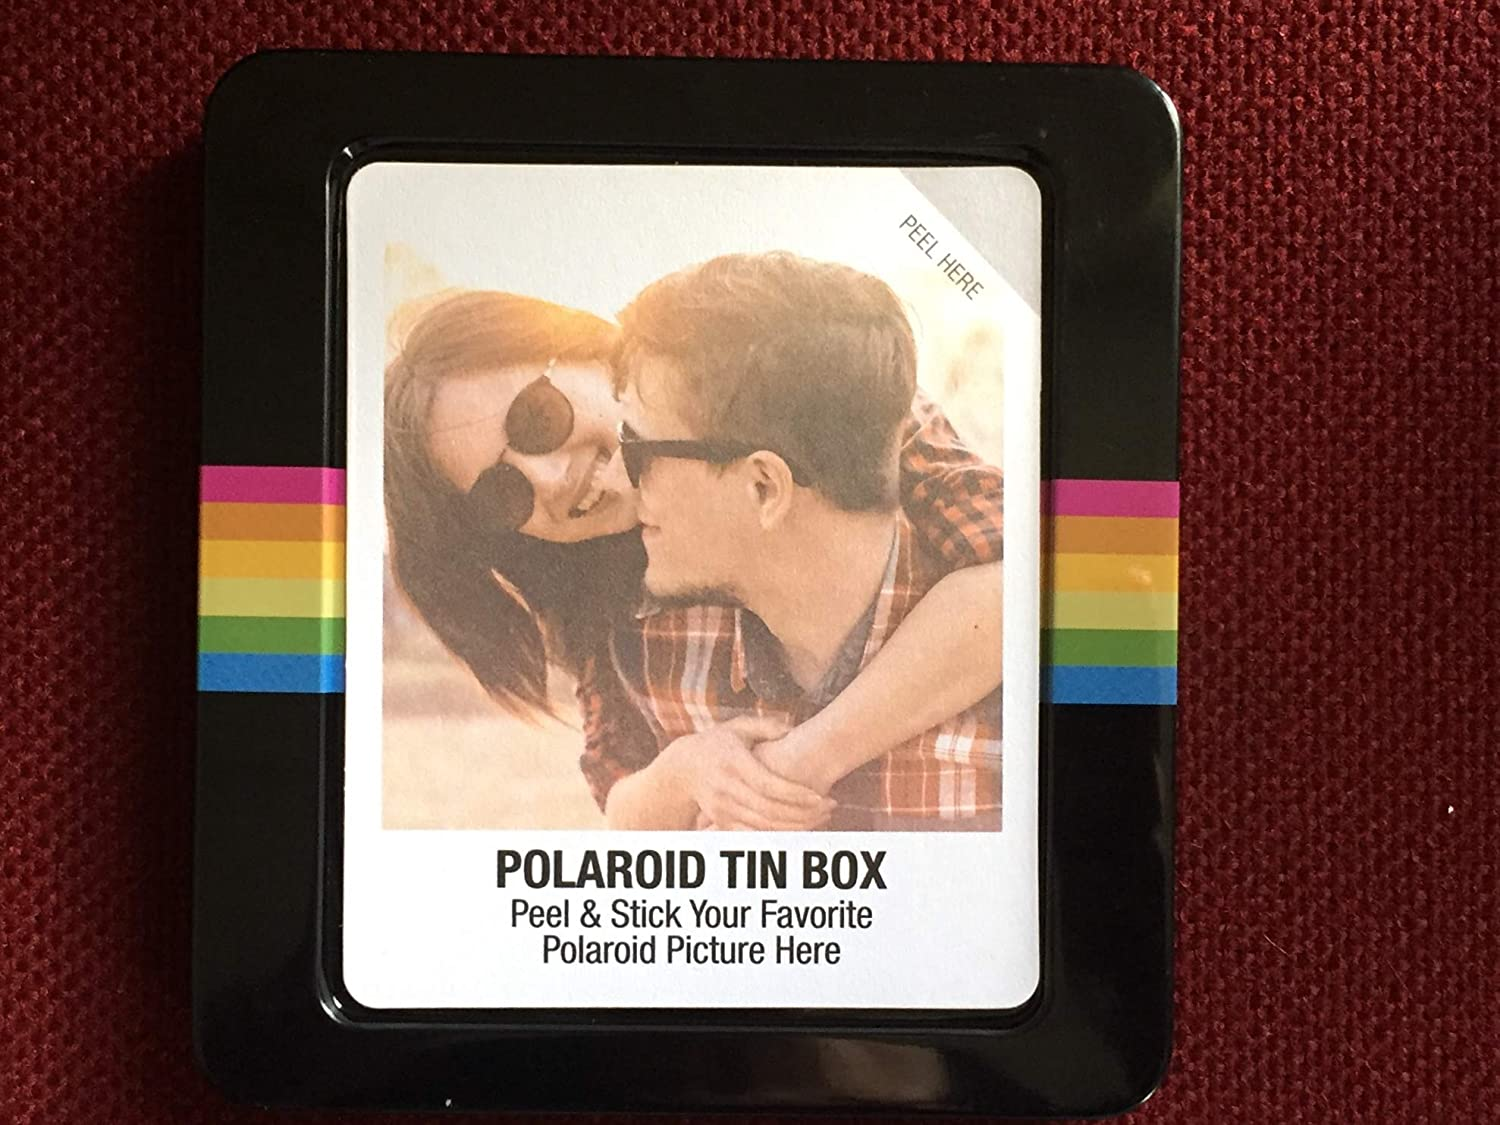 Photo Box for Polaroid Pictures Unknow